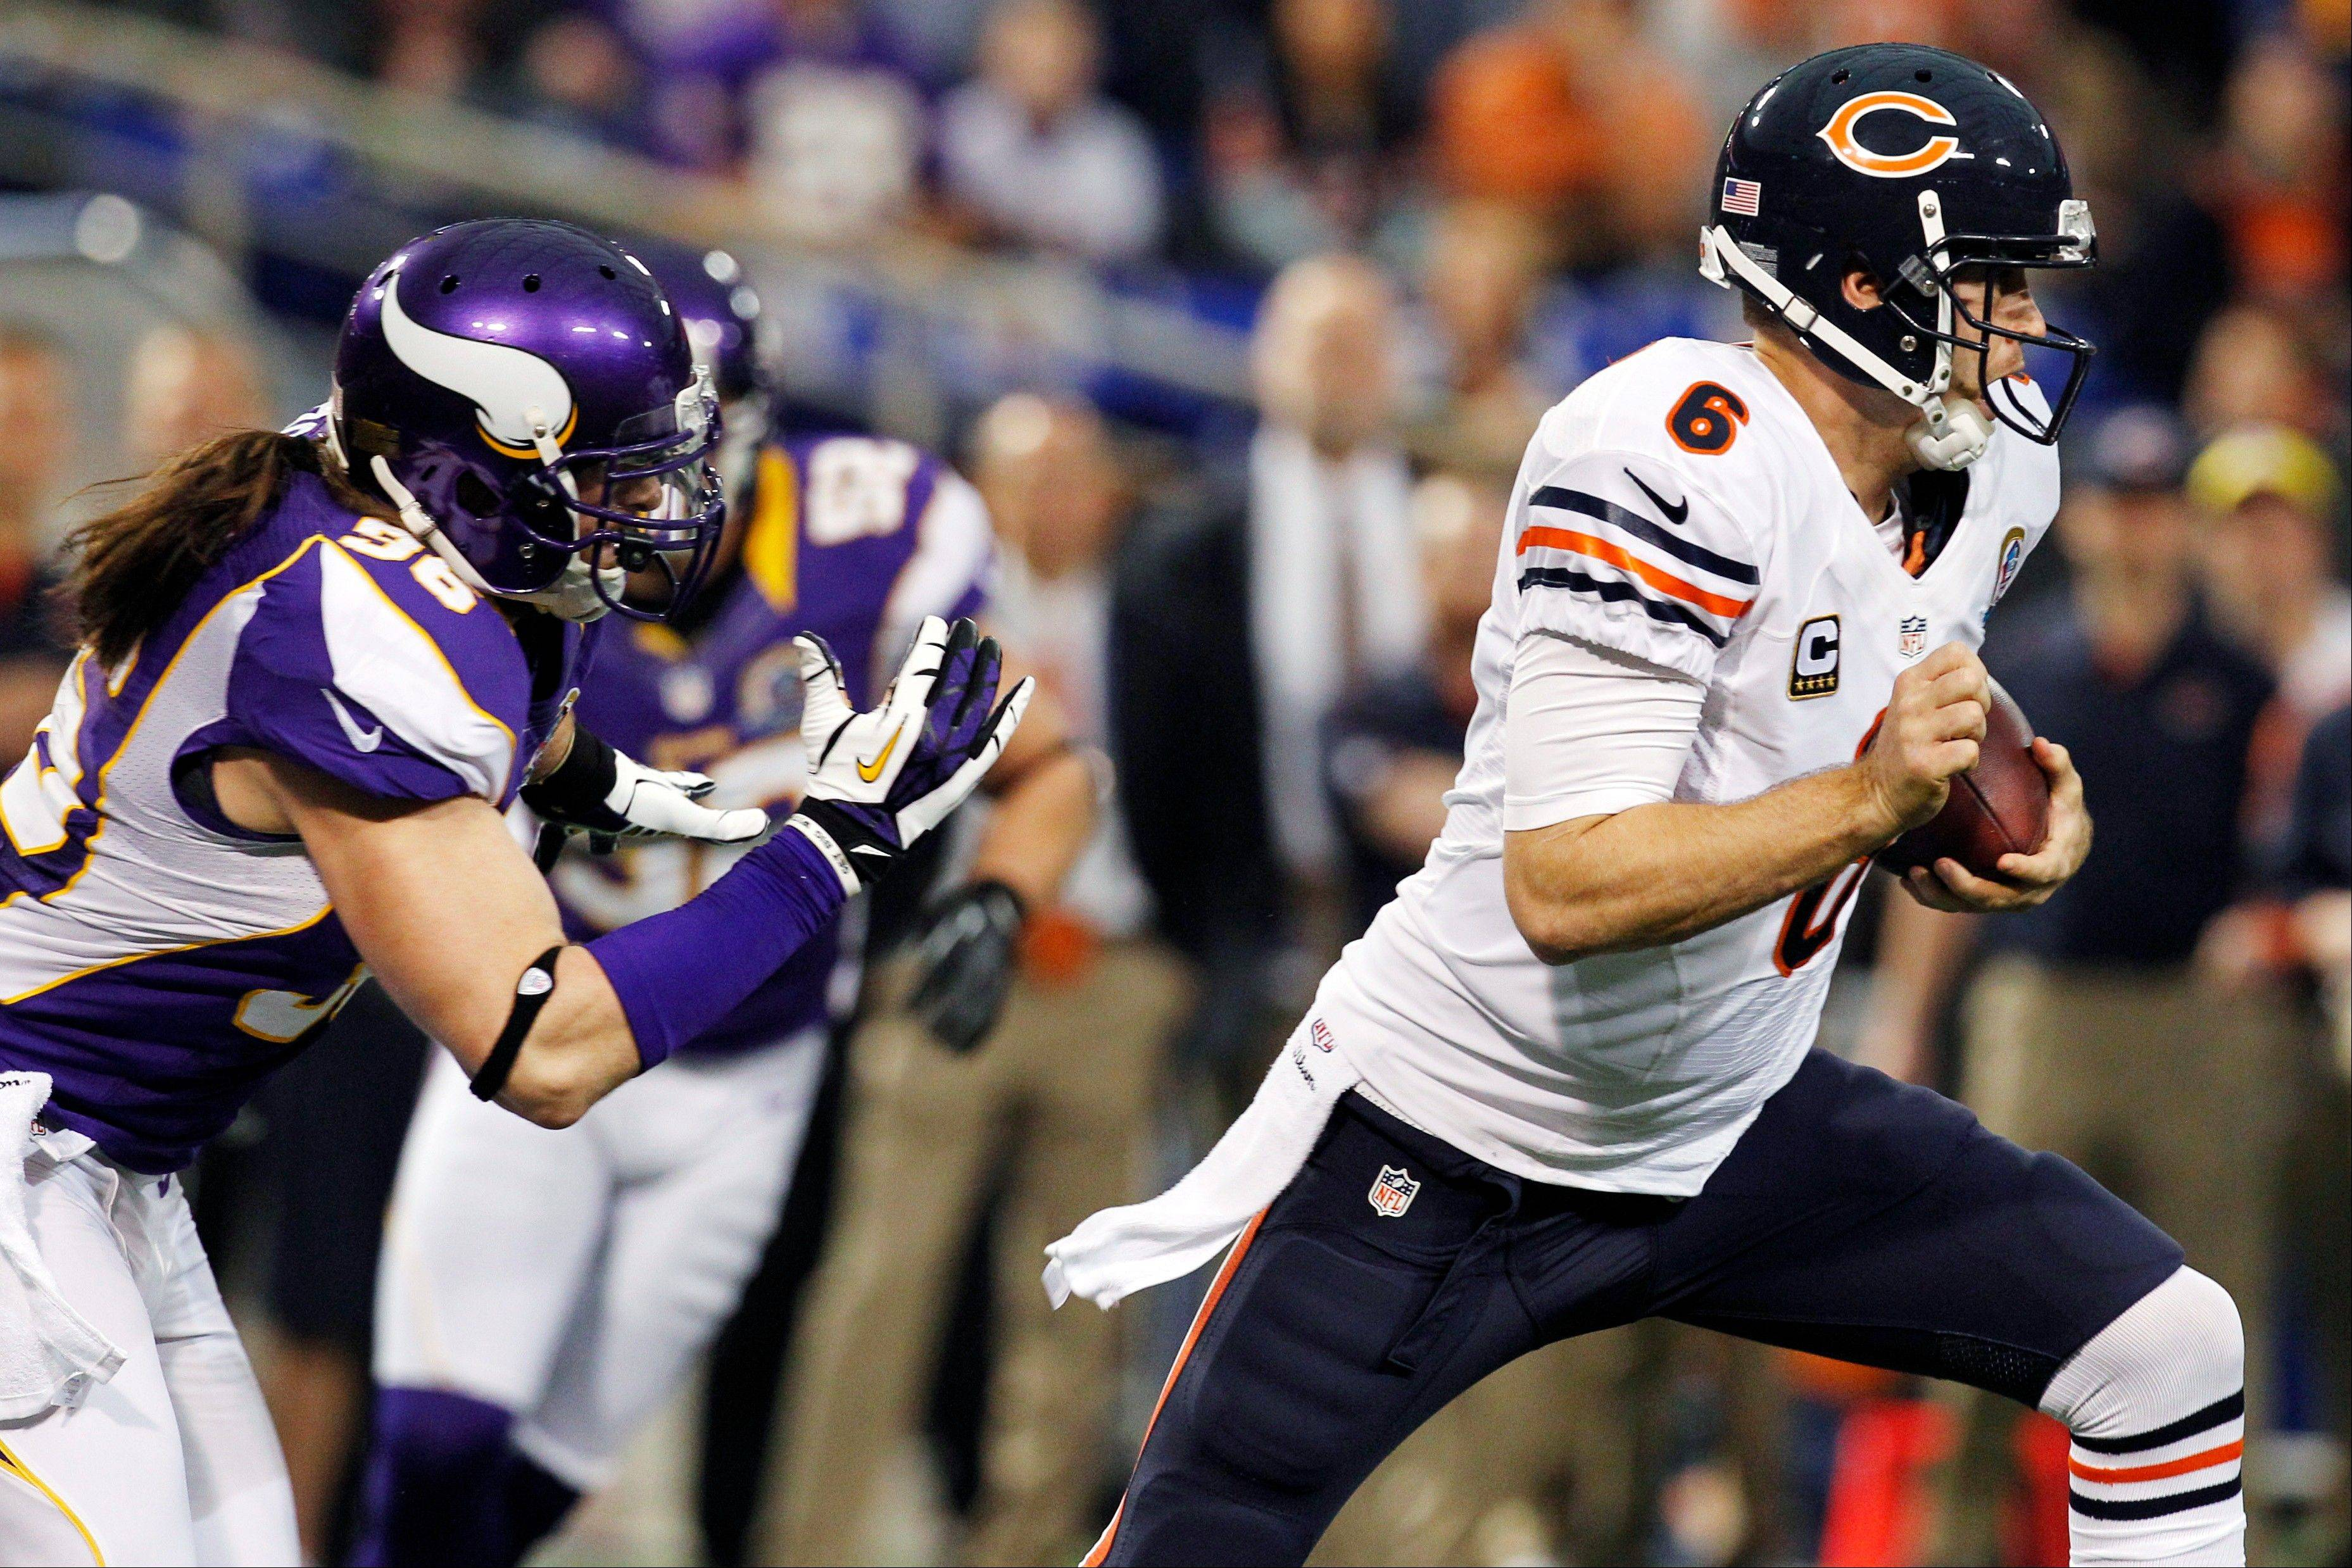 Chicago Bears quarterback Jay Cutler, right, runs from Minnesota Vikings defensive end Brian Robison during the first half.